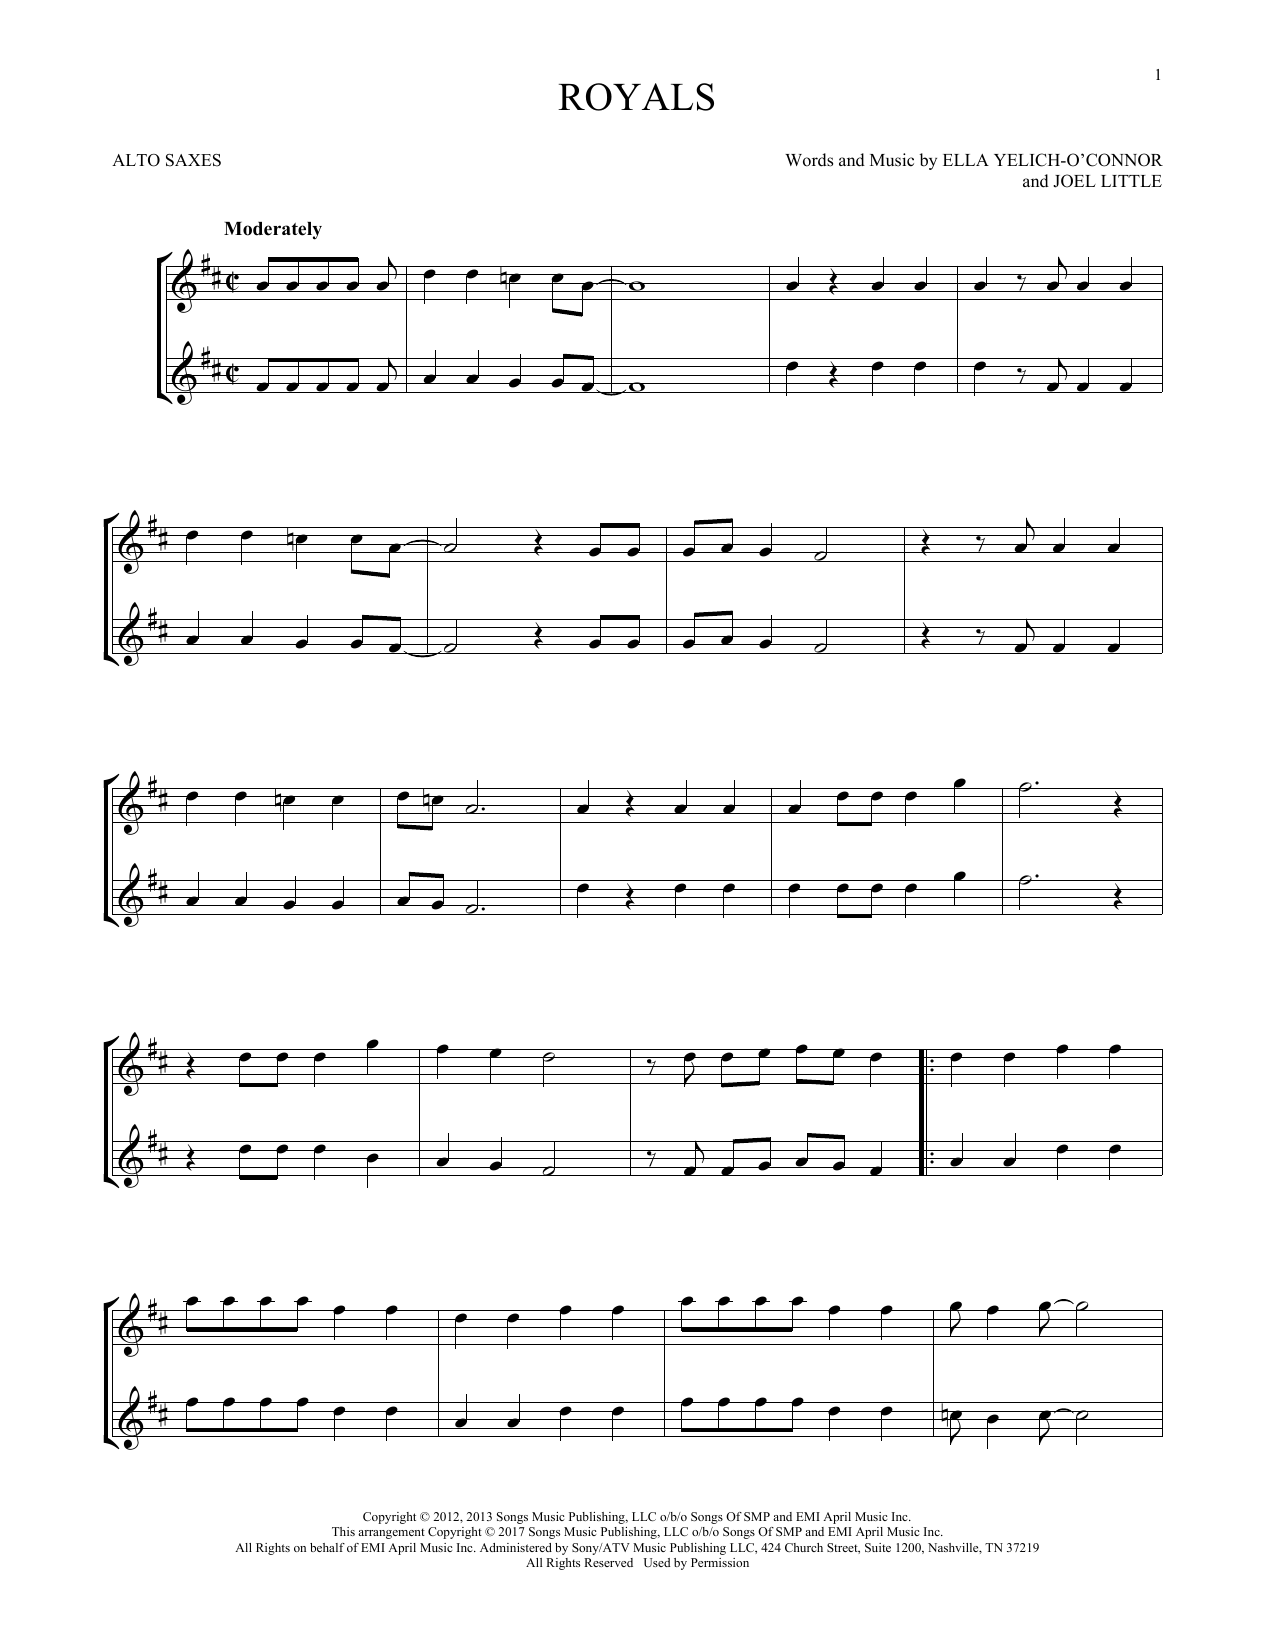 Lorde Royals Sheet Music Notes Chords Printable Rock Alto